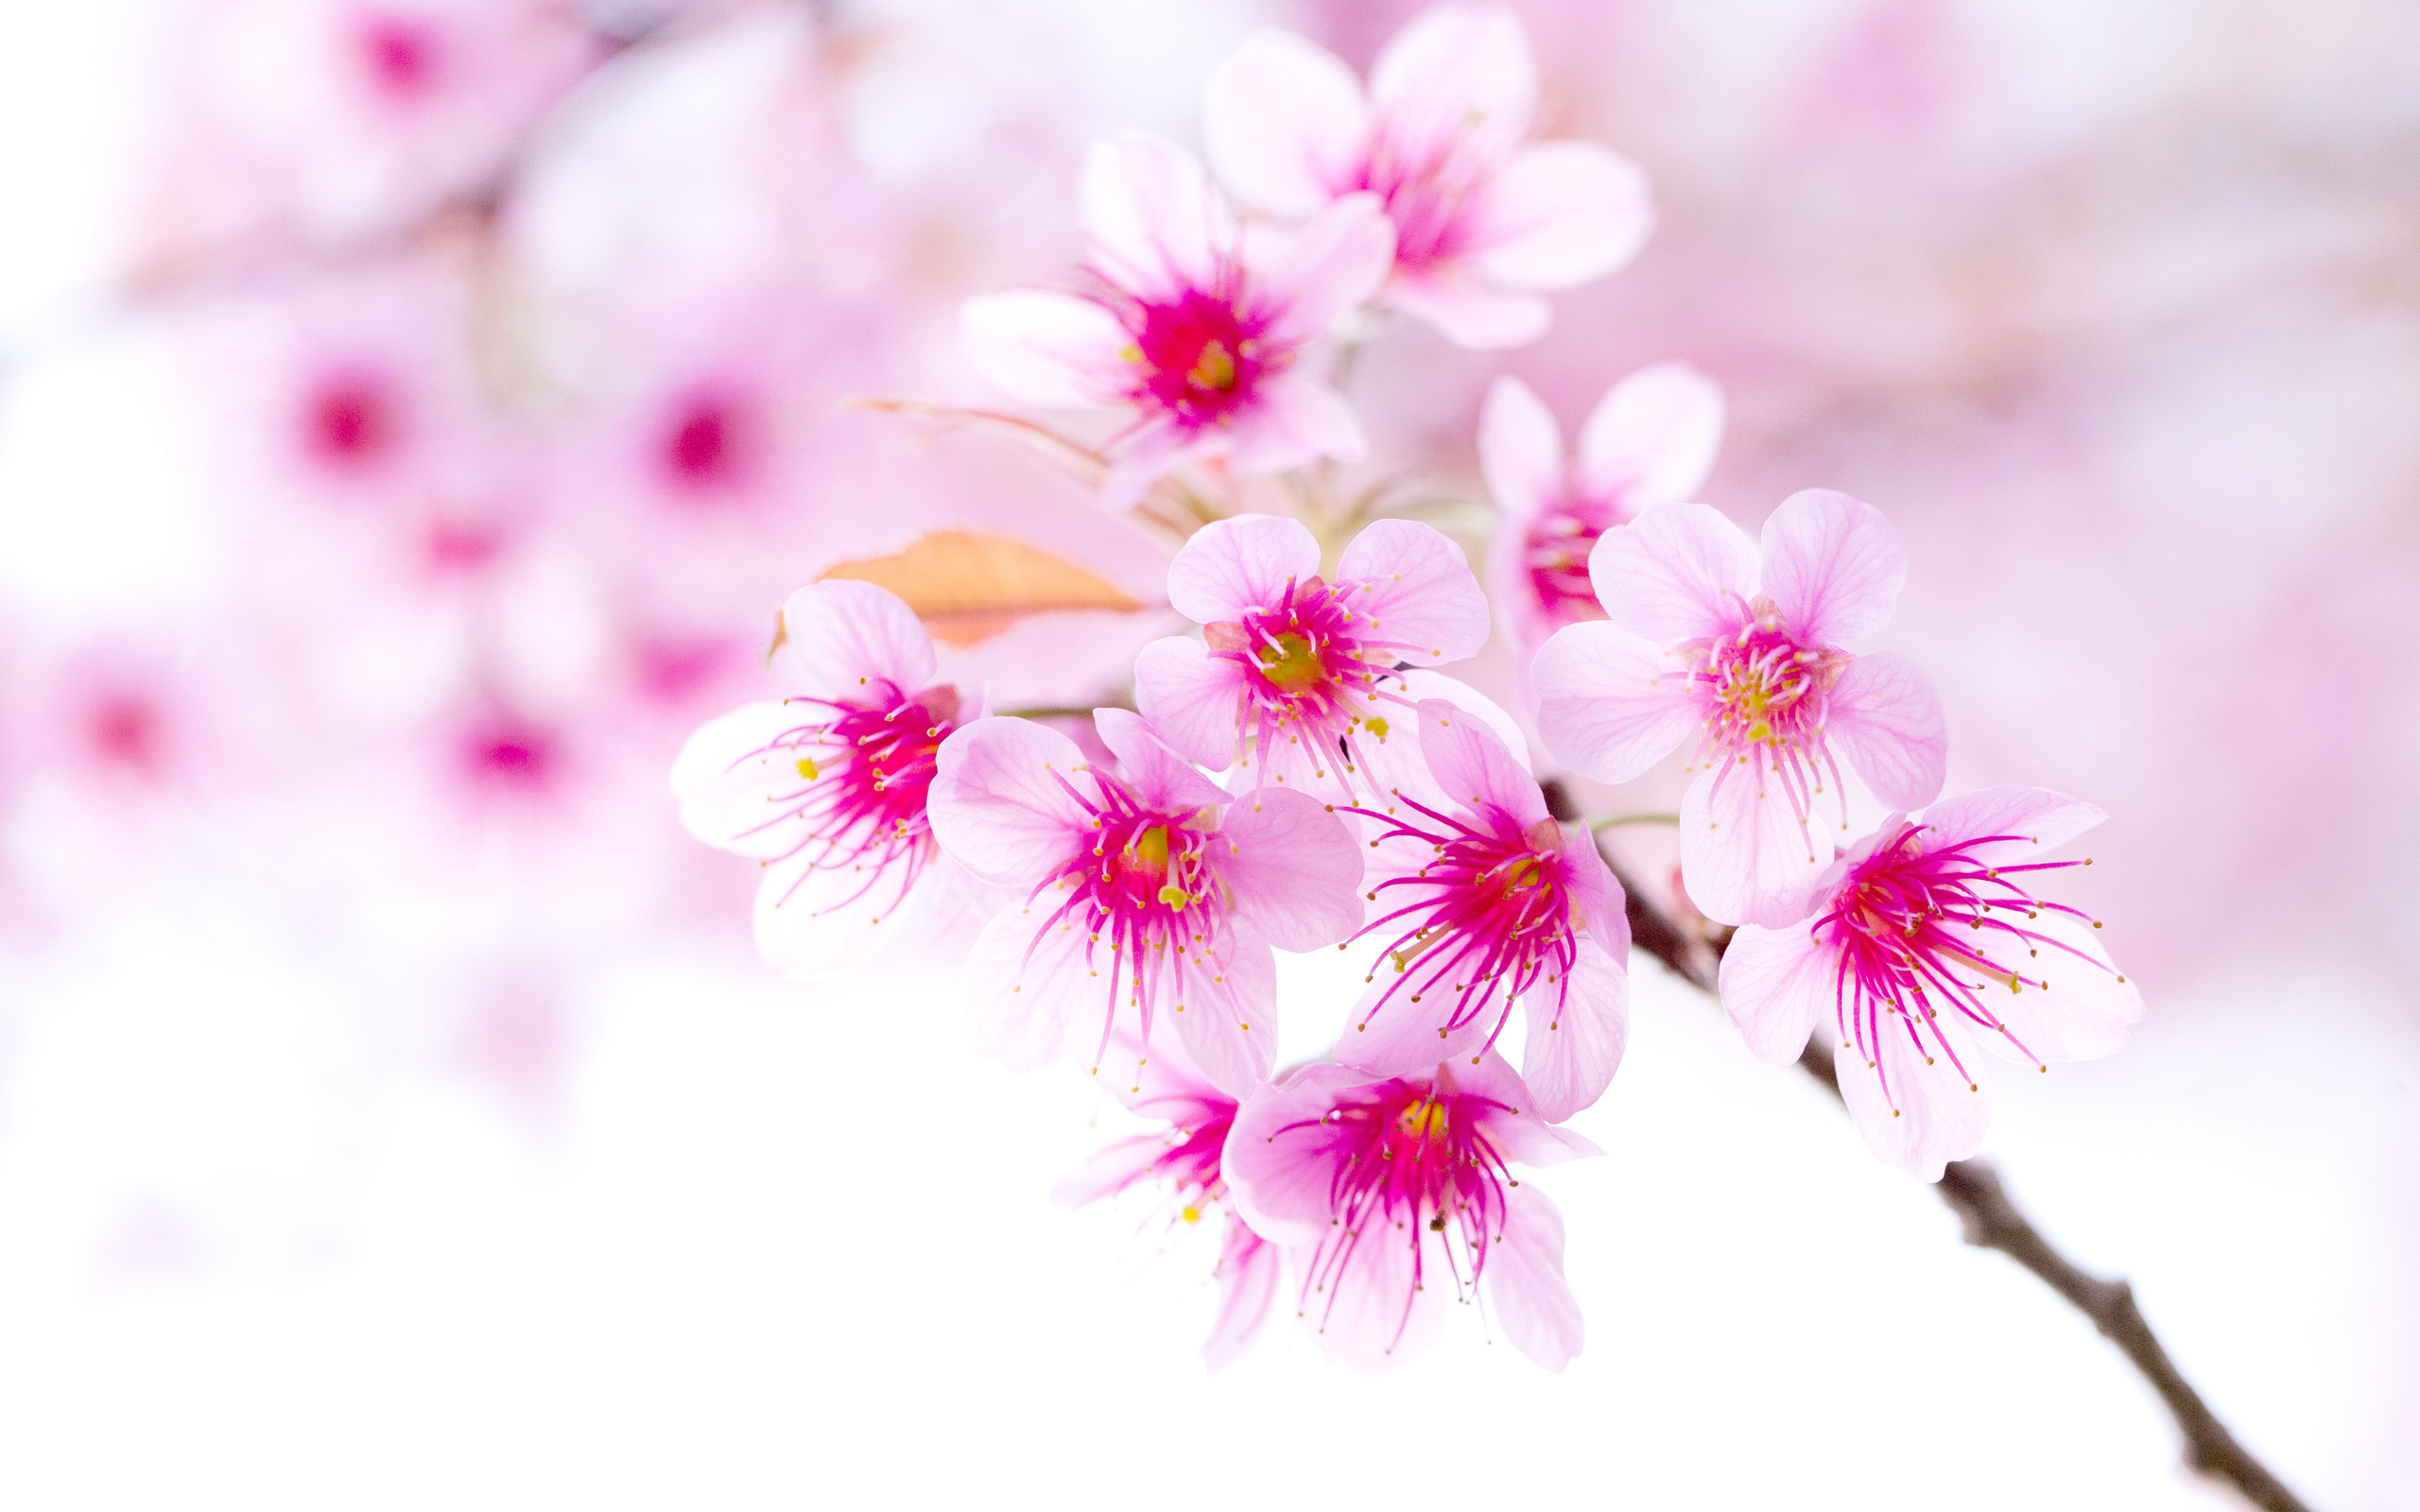 Cherry blossom pink sakura flower wallpapers cherry blossom pink sakura flower click to view mightylinksfo